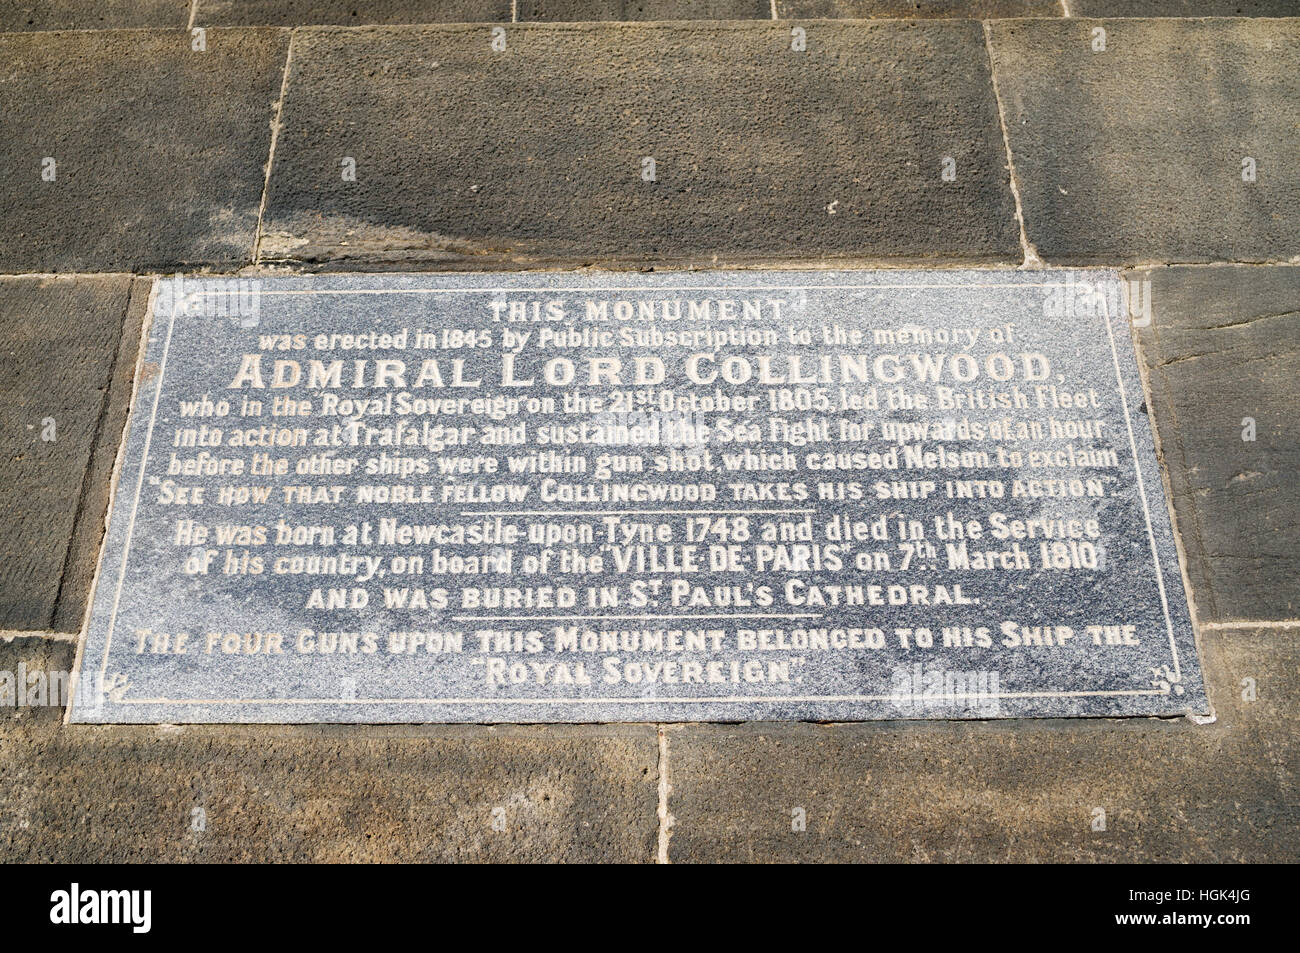 Plaque on the Admiral Lord Collingwood memorial statue at Tynemouth, North Tyneside, England, UK Stock Photo